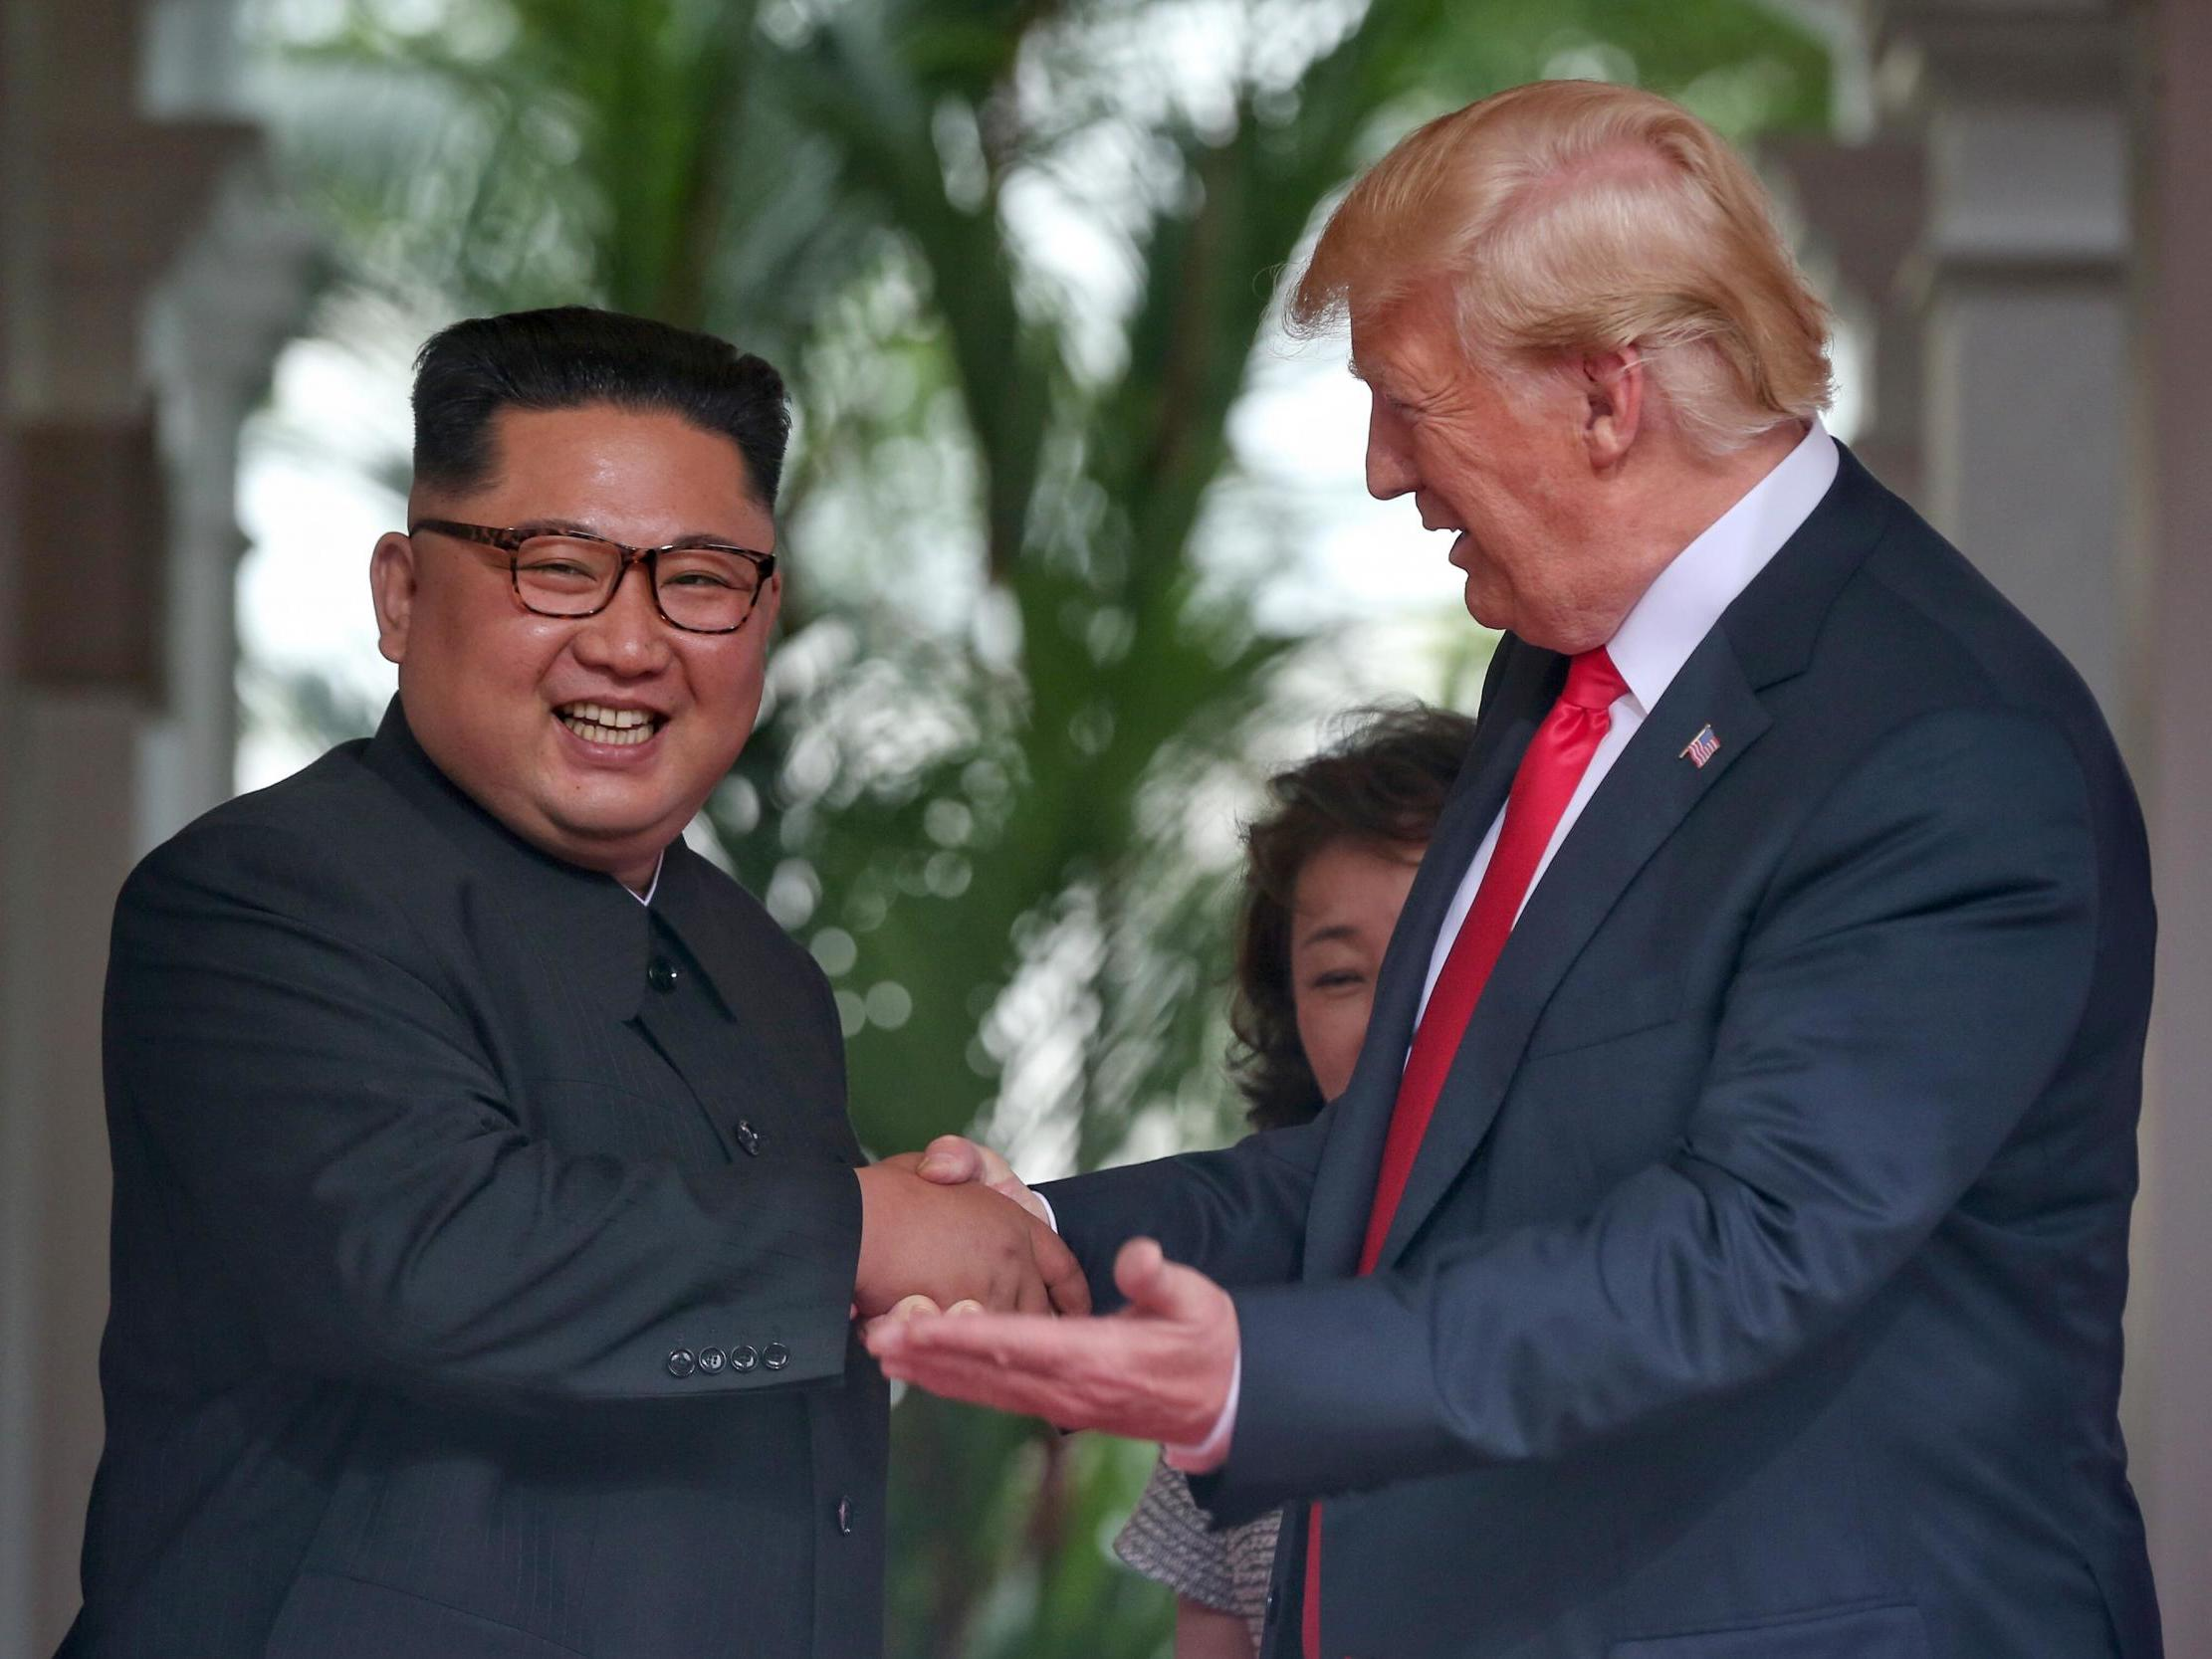 Trump thanks Kim Jong-un for 'nice letter' following reports North Korea is developing new missile